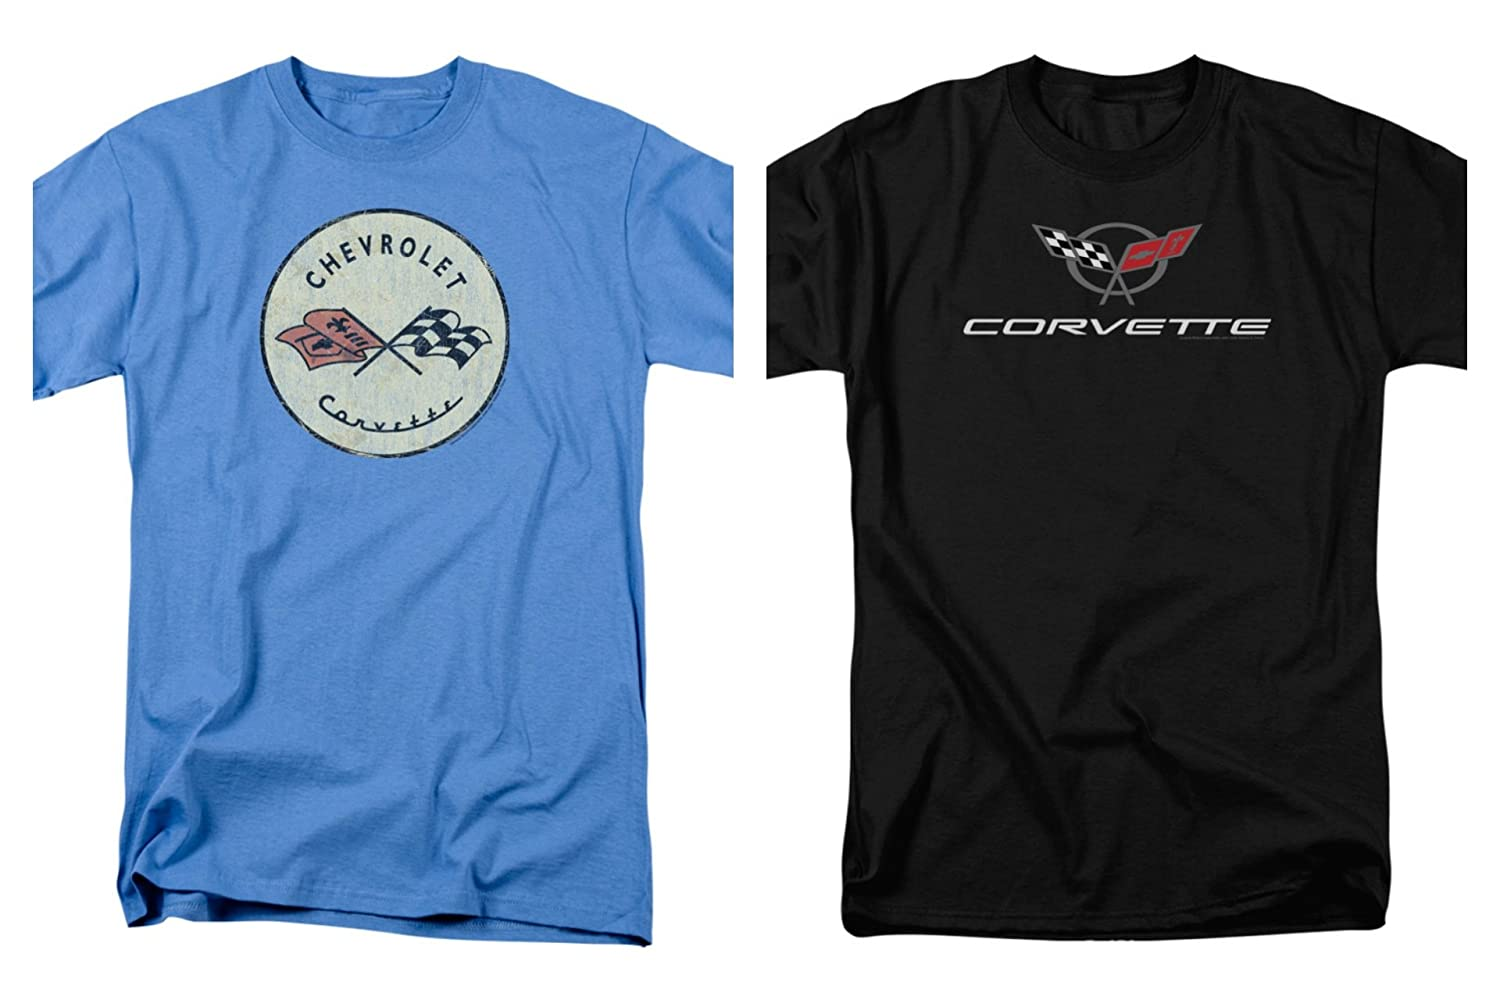 846736d9a8c7 Top1  2 Pack Combo Corvette Vette Modern   Original Logo Men s Adult T- Shirts Black   Blue